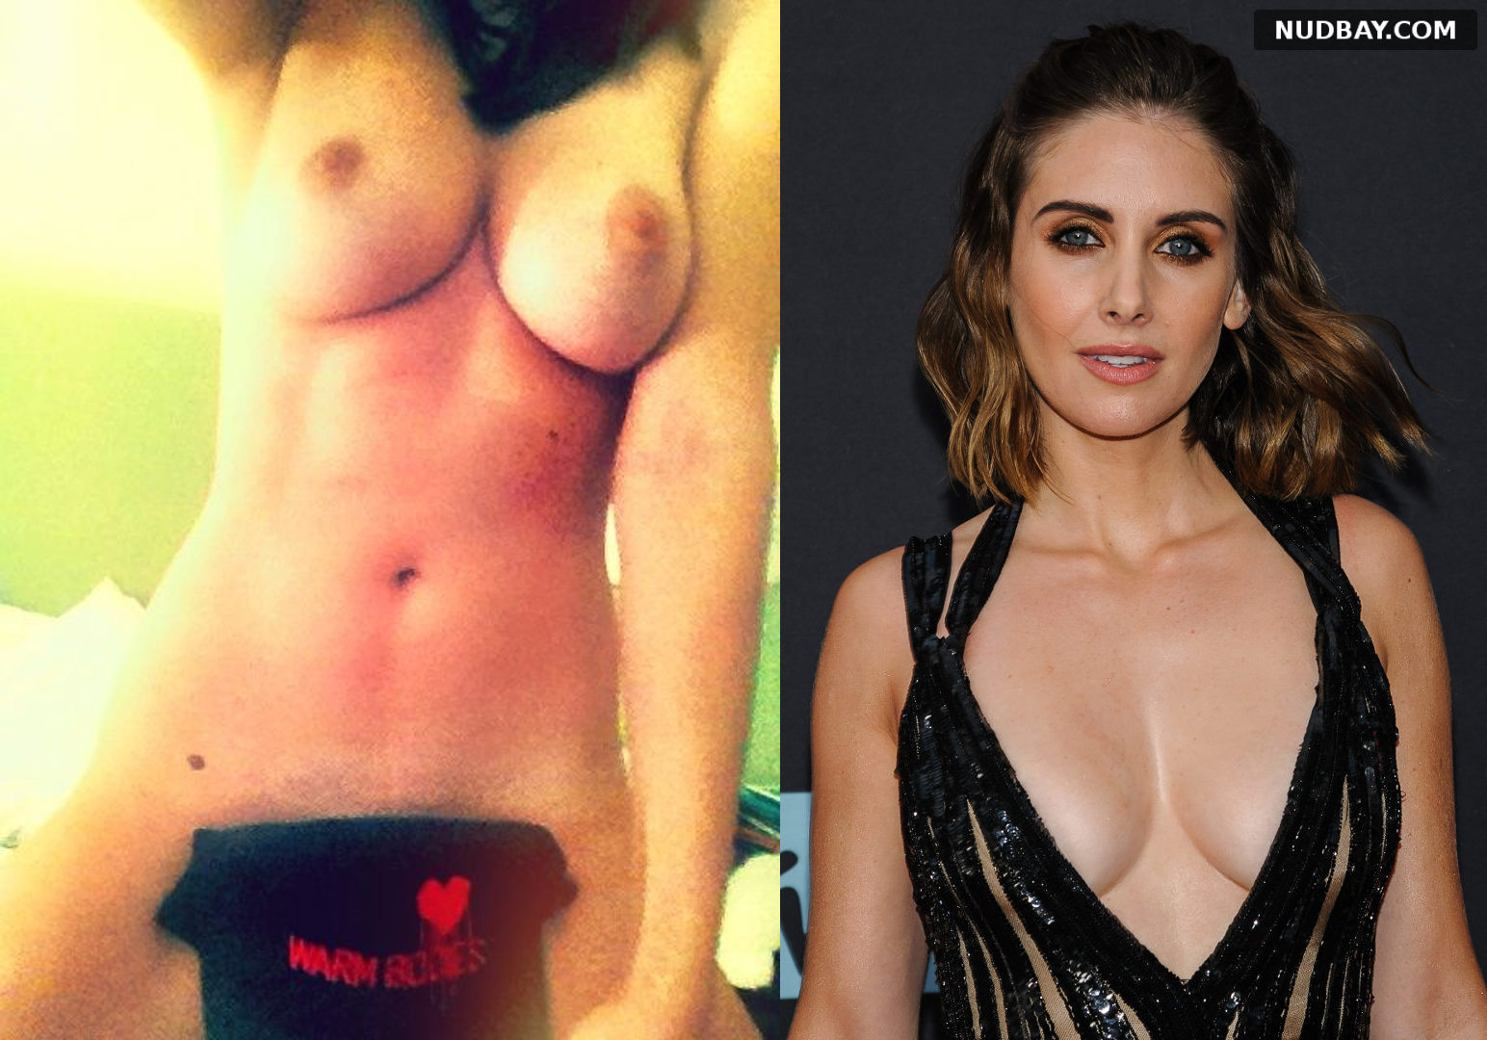 Alison Brie nude showing big tits 2021